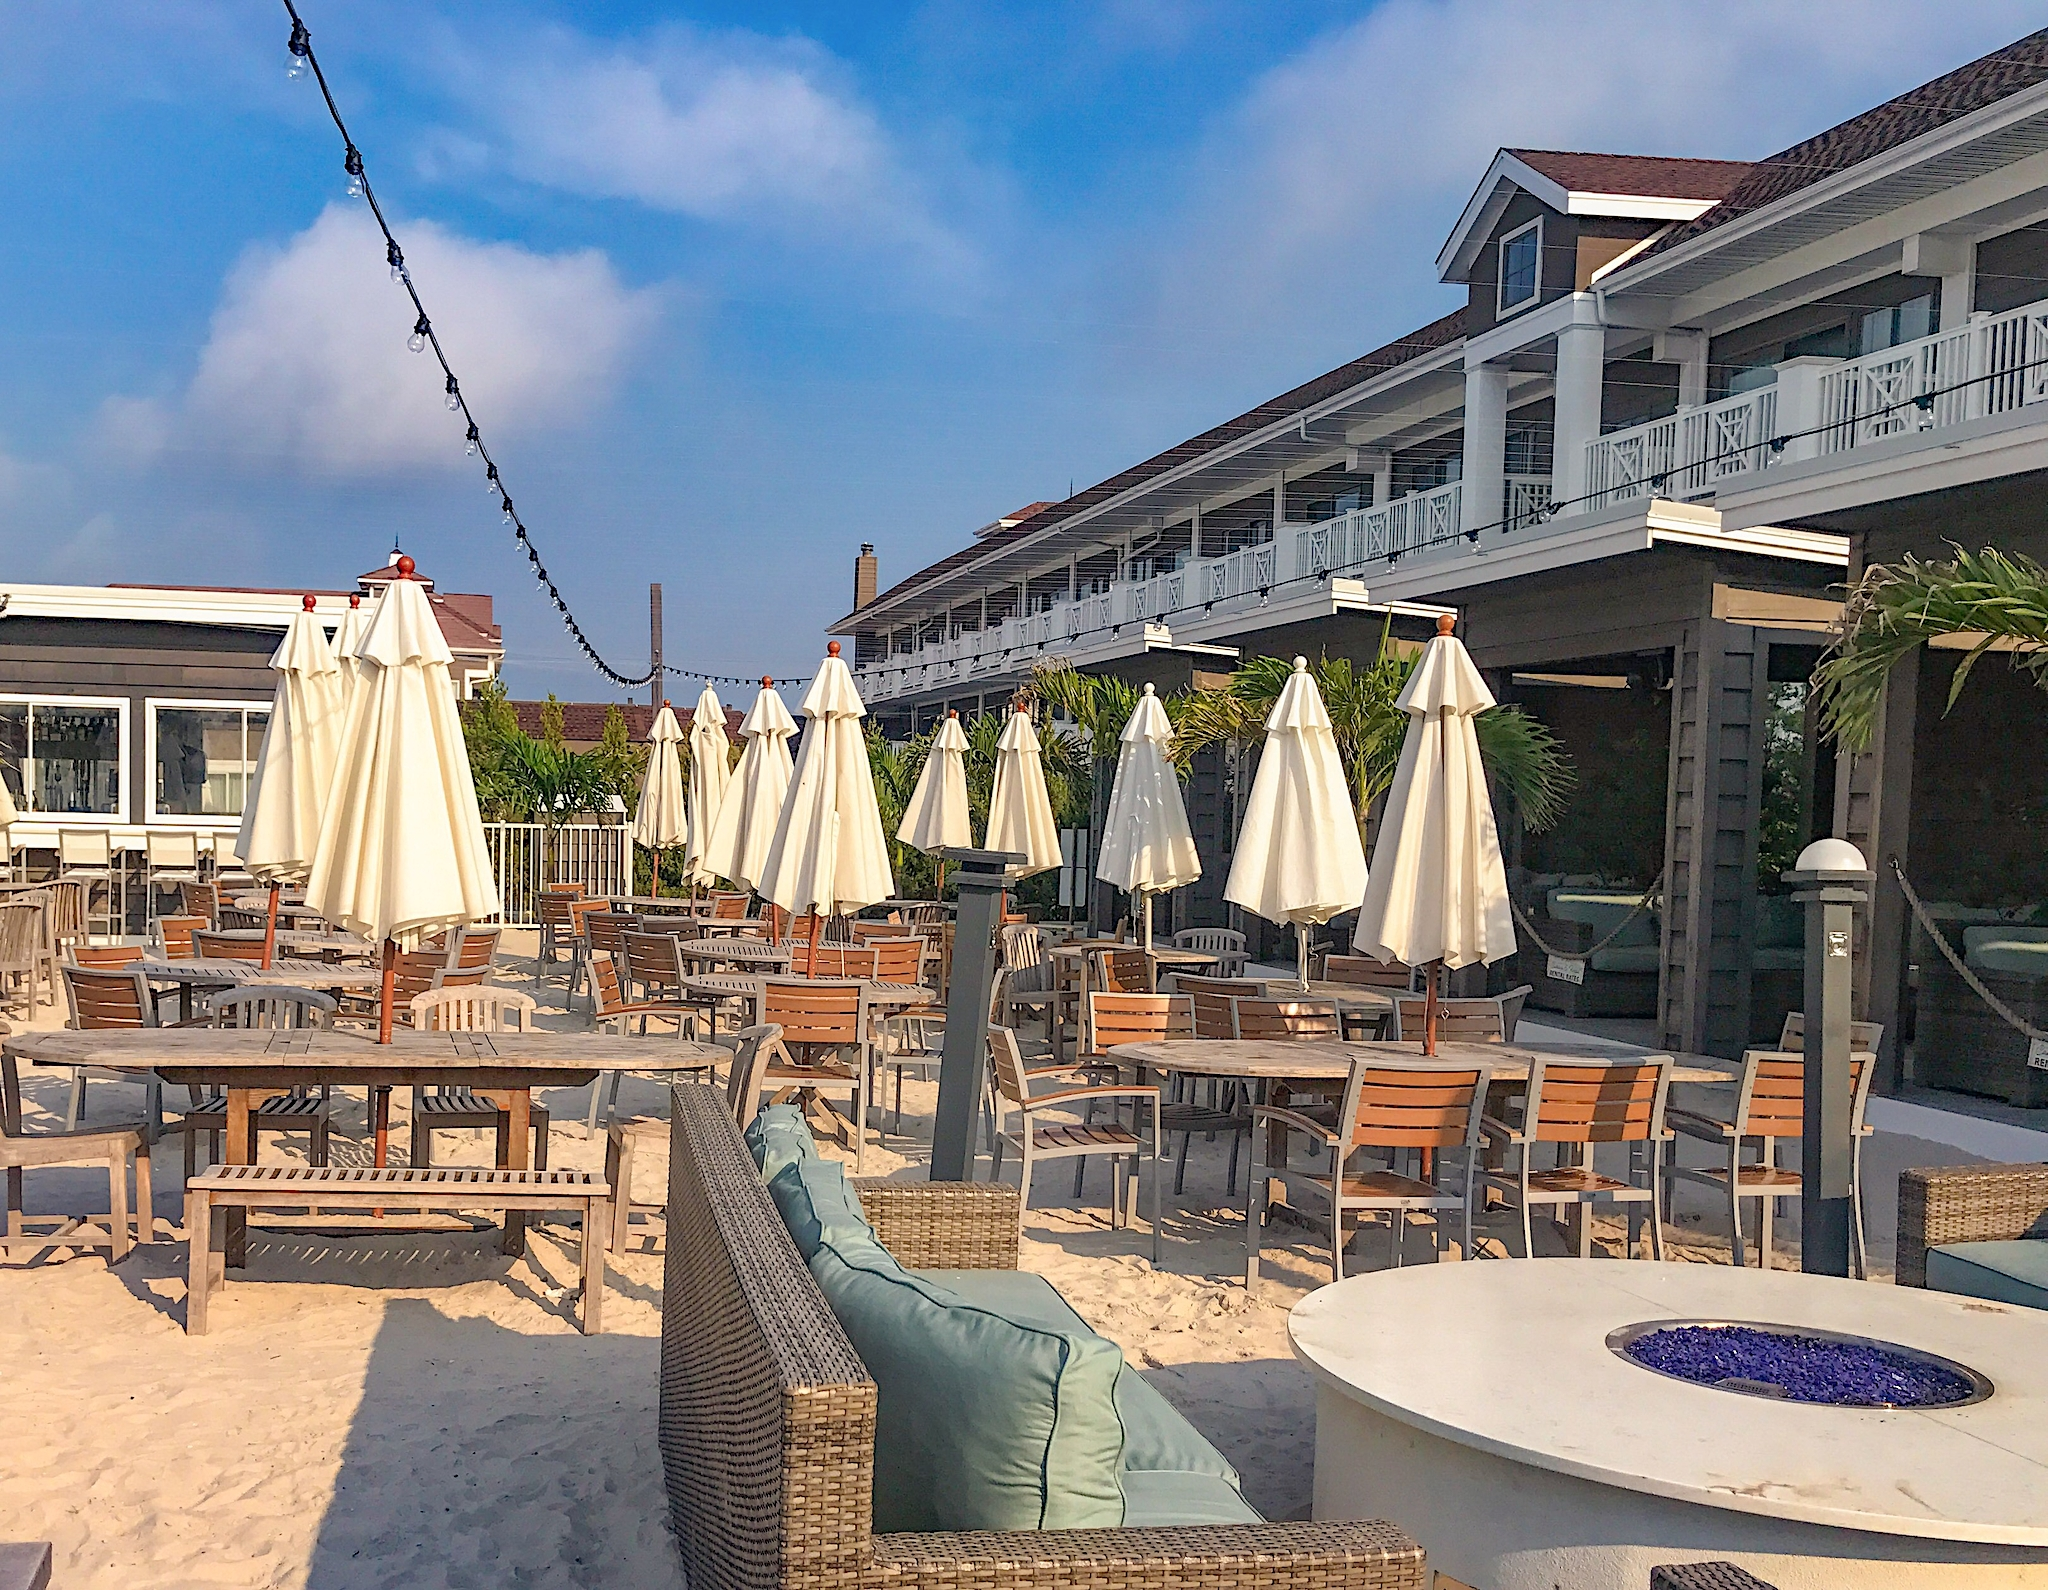 Where To Stay In Avalon, NJ